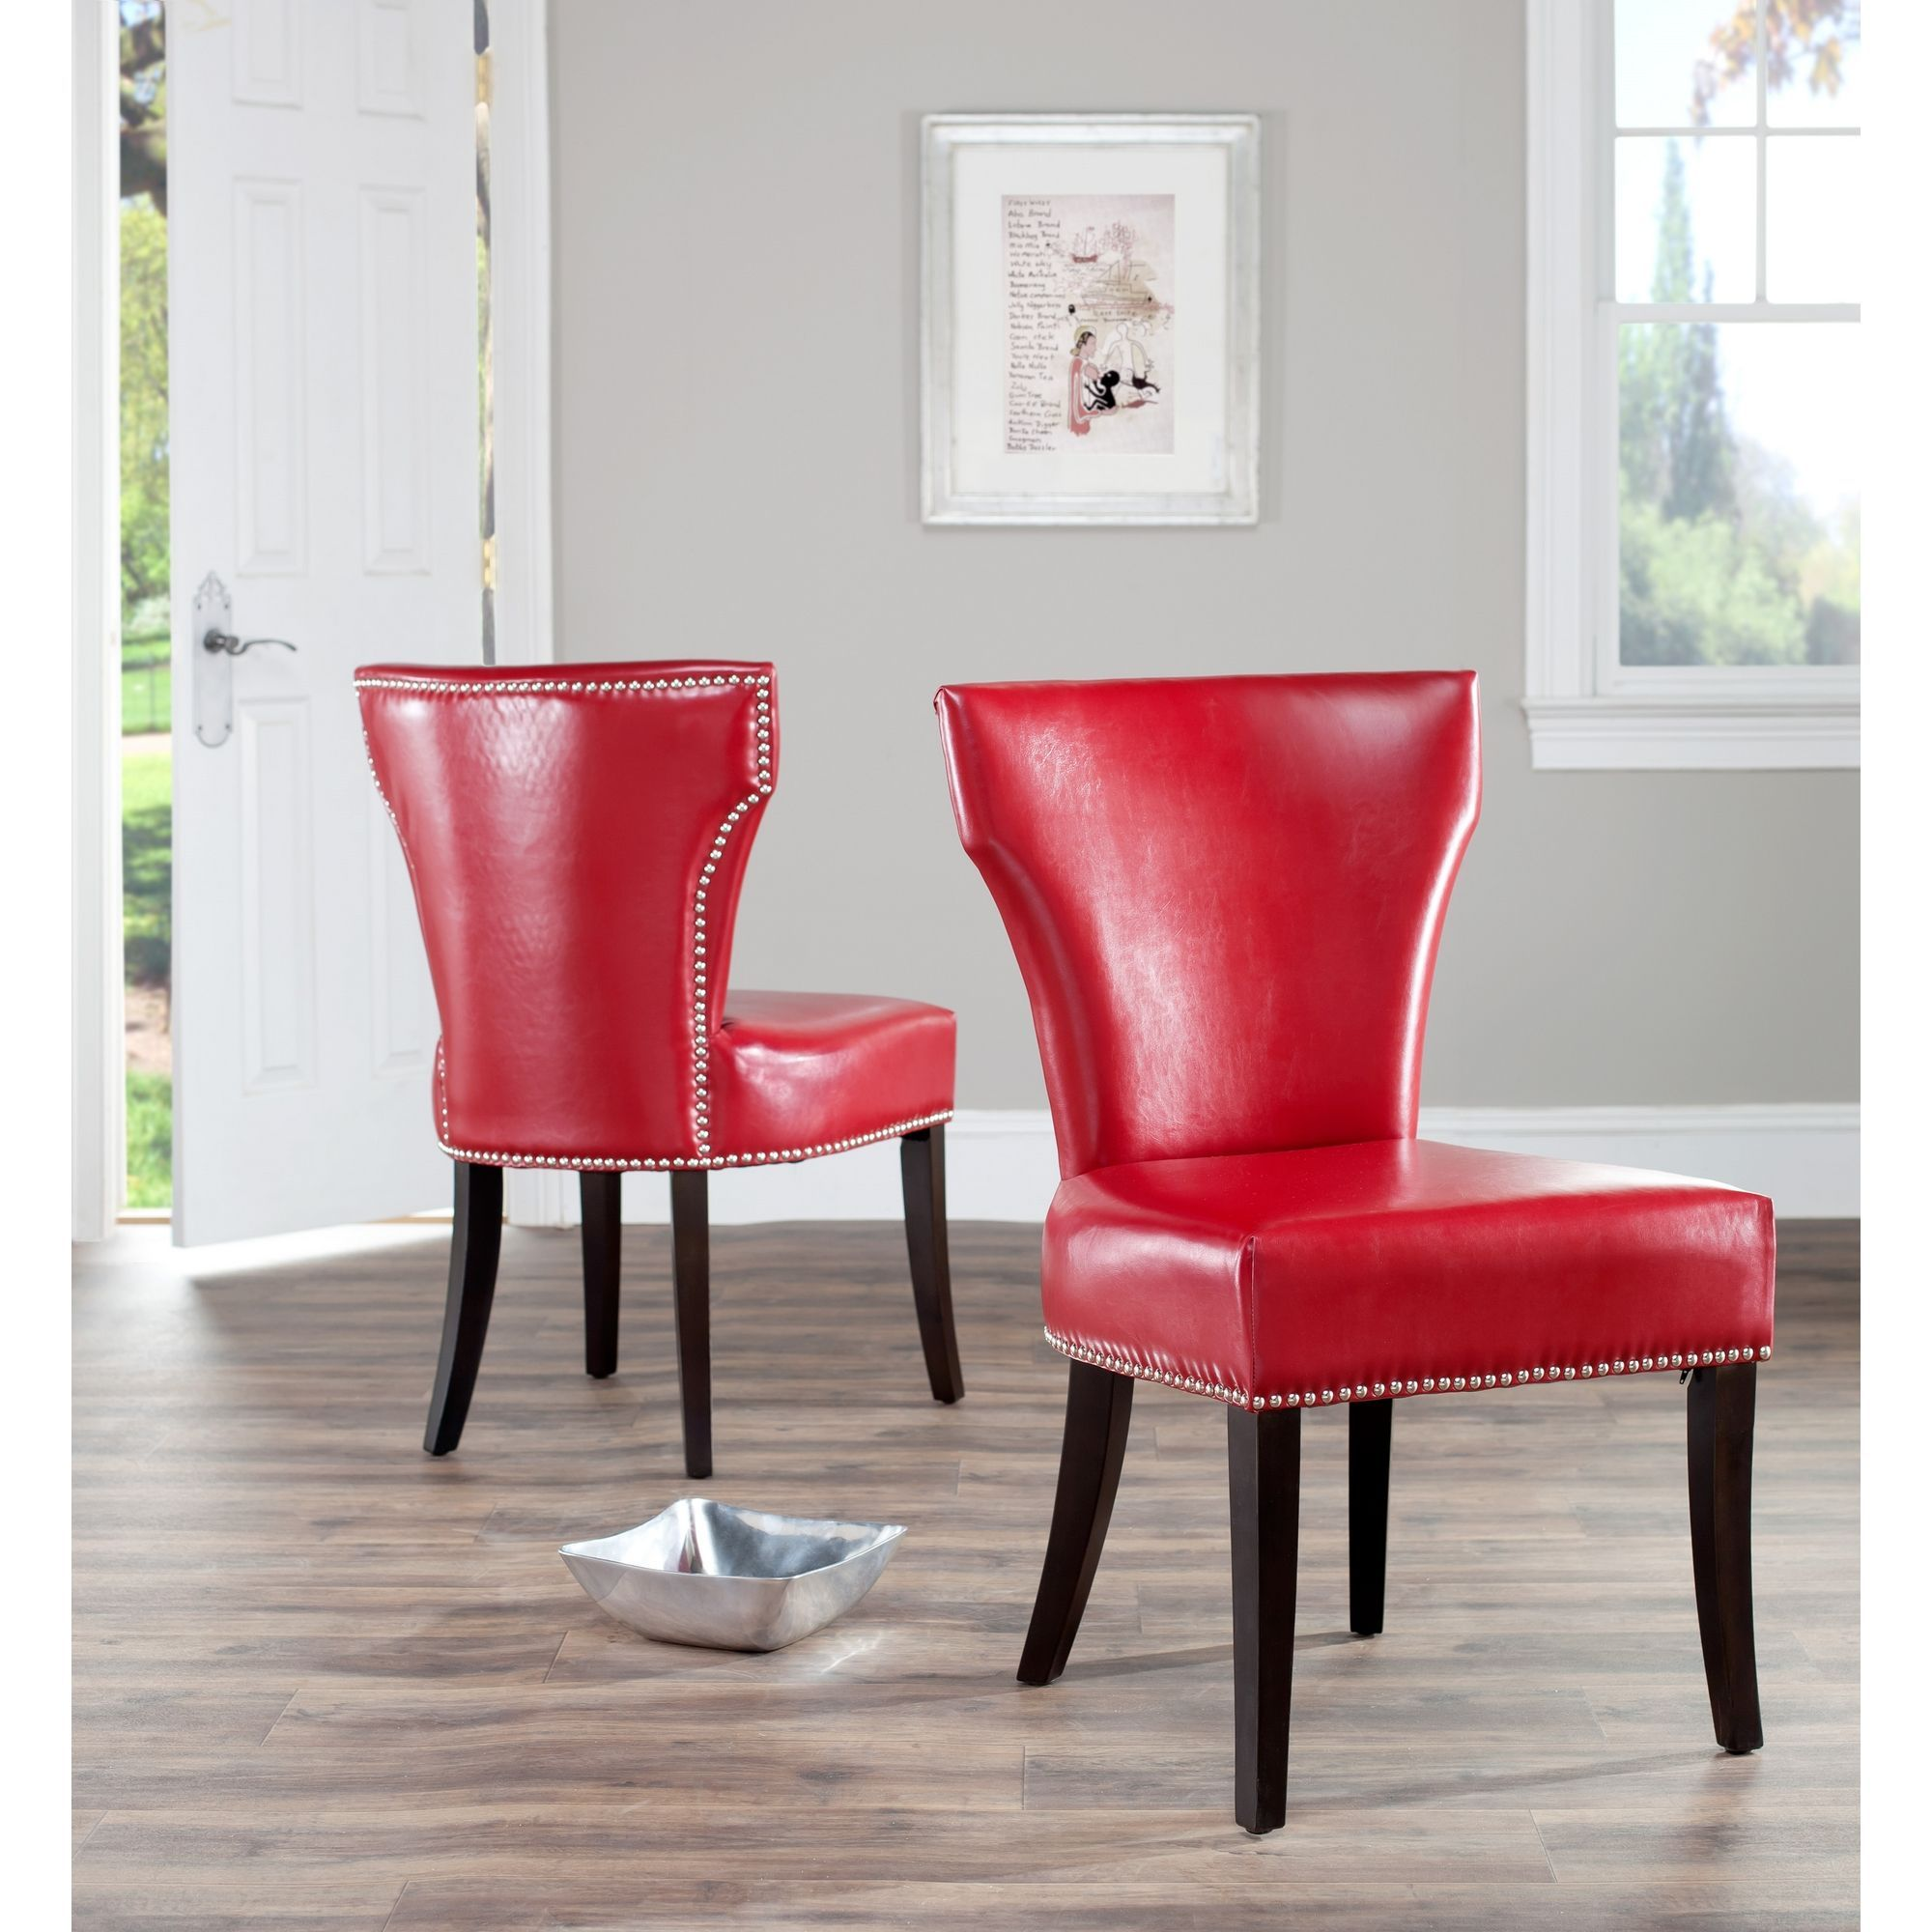 Update The Look Of Your Dining Room With This Set Two Bicast Leather Chairs